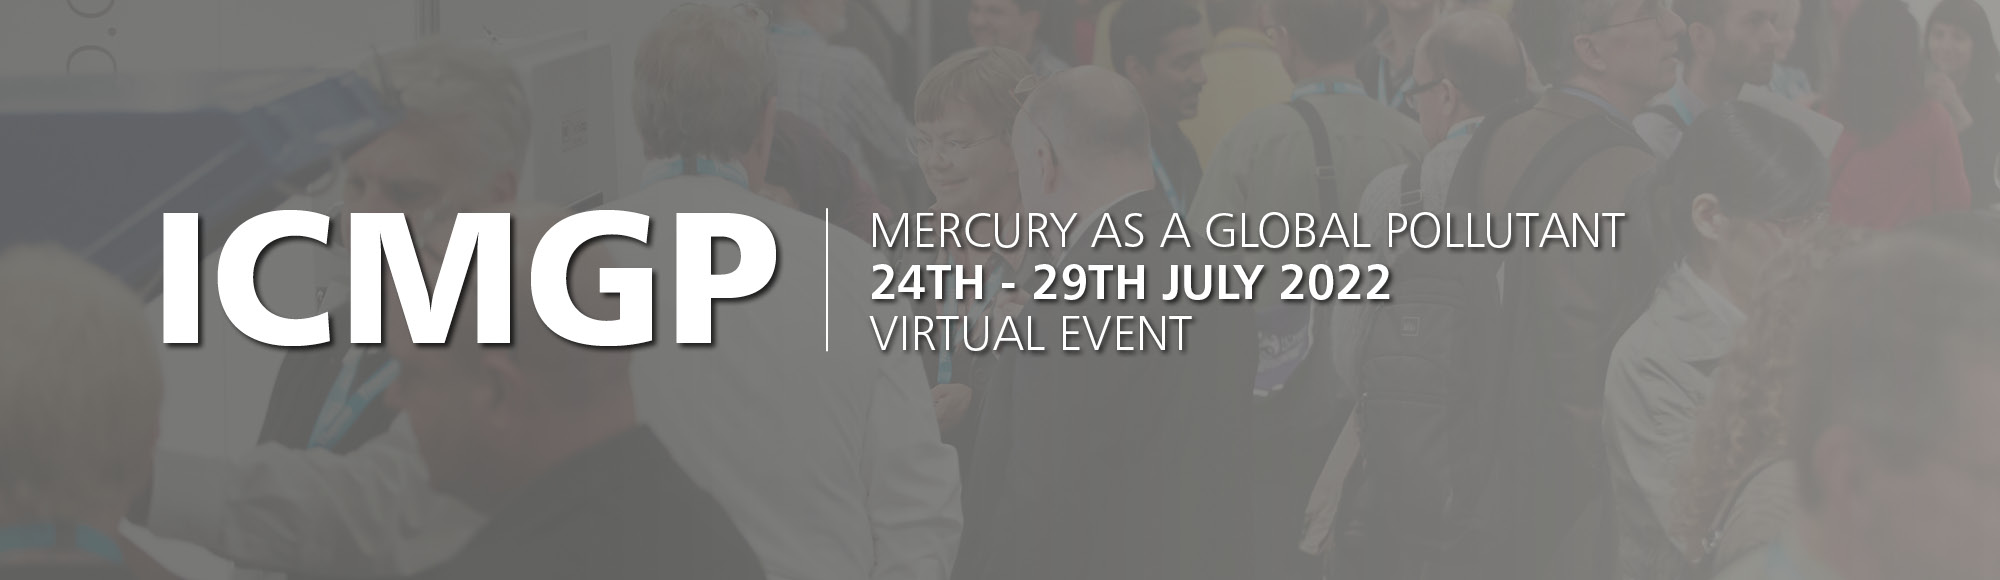 2022 International Conference on Mercury as a Global Pollutant